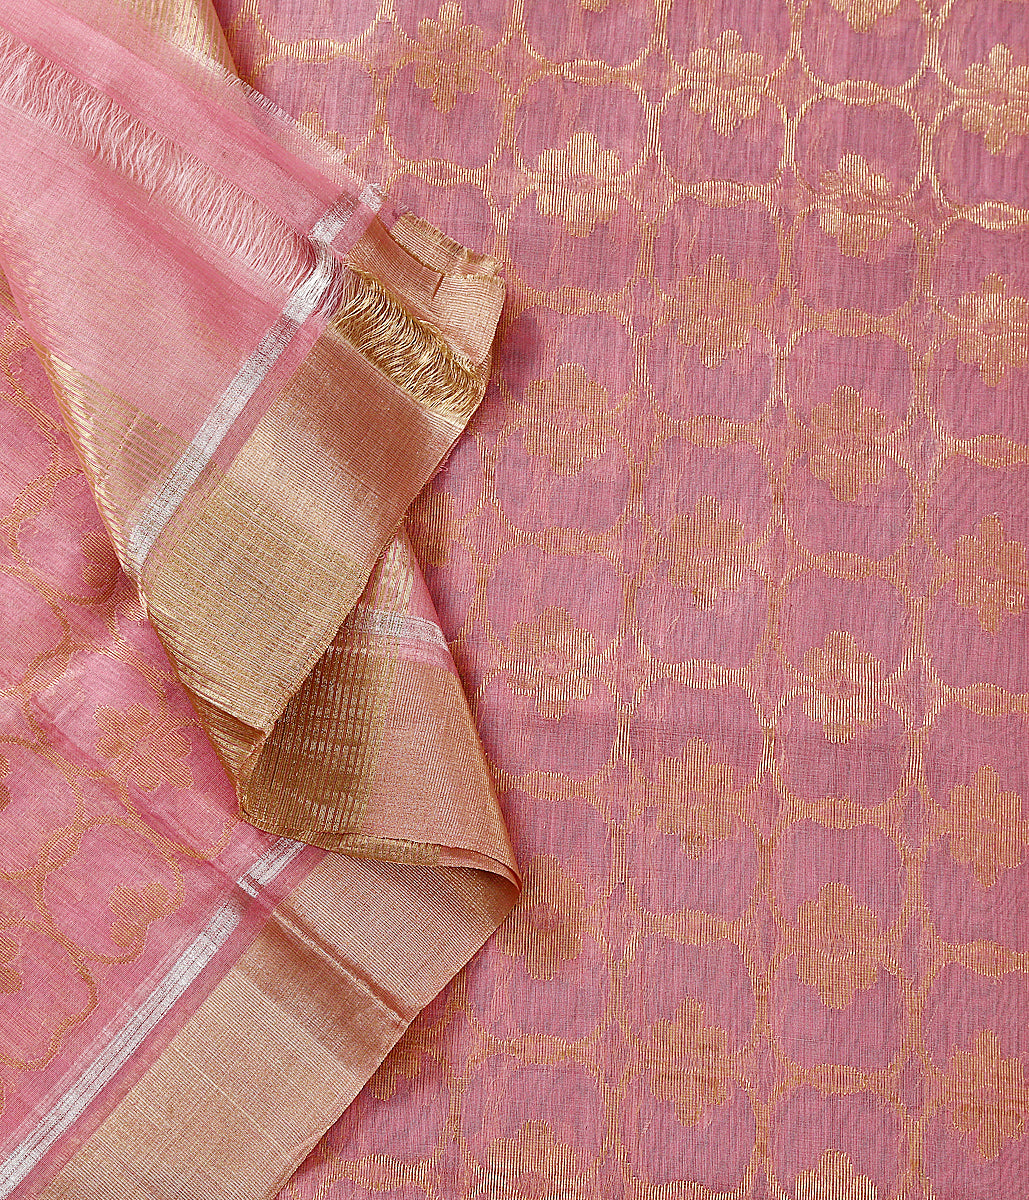 Handwoven Pink chanderi dupatta woven in cotton silk